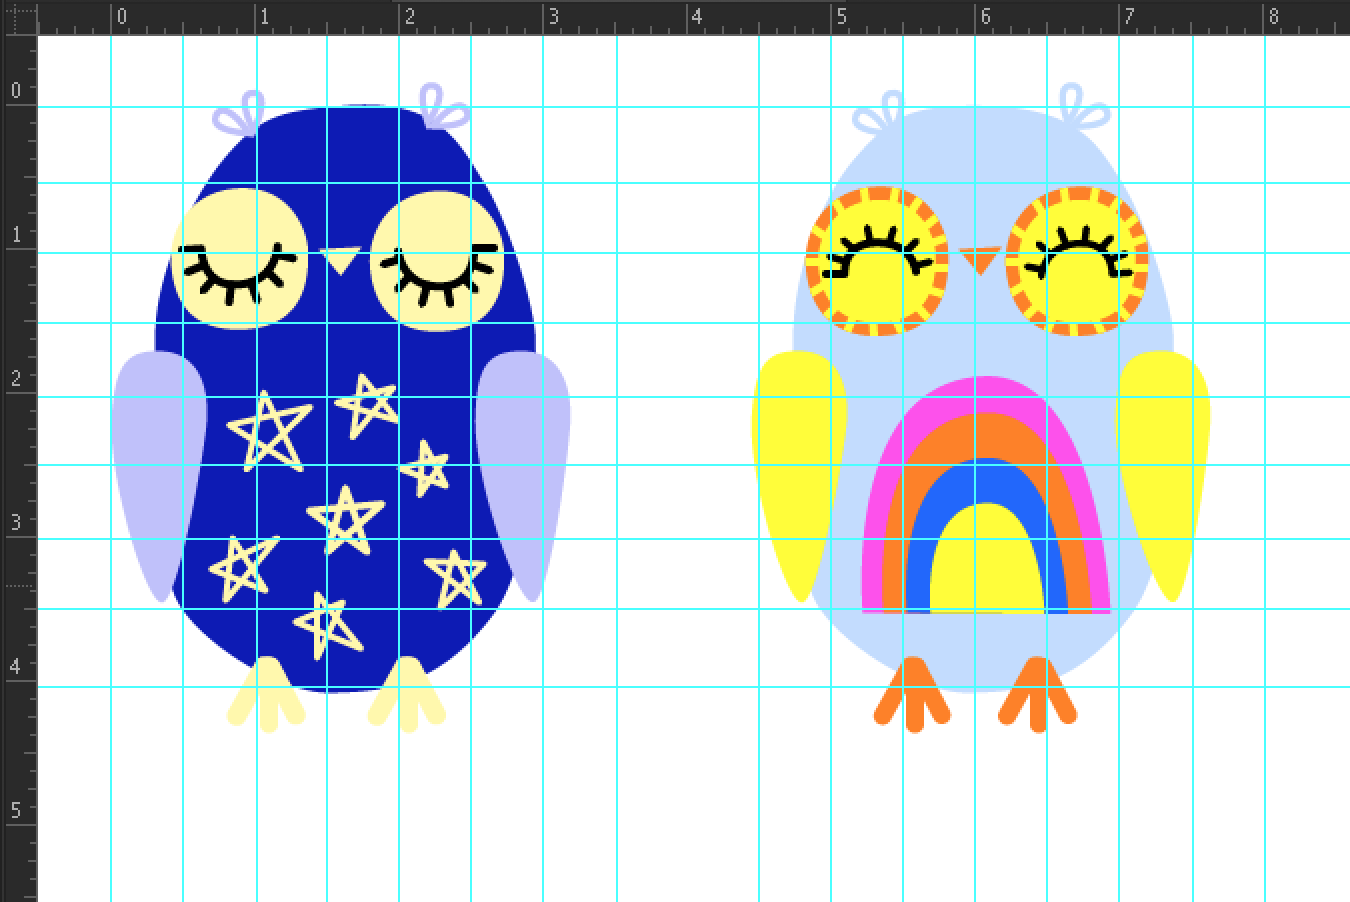 Digital illustrations of 2 owls with a grid overlay.